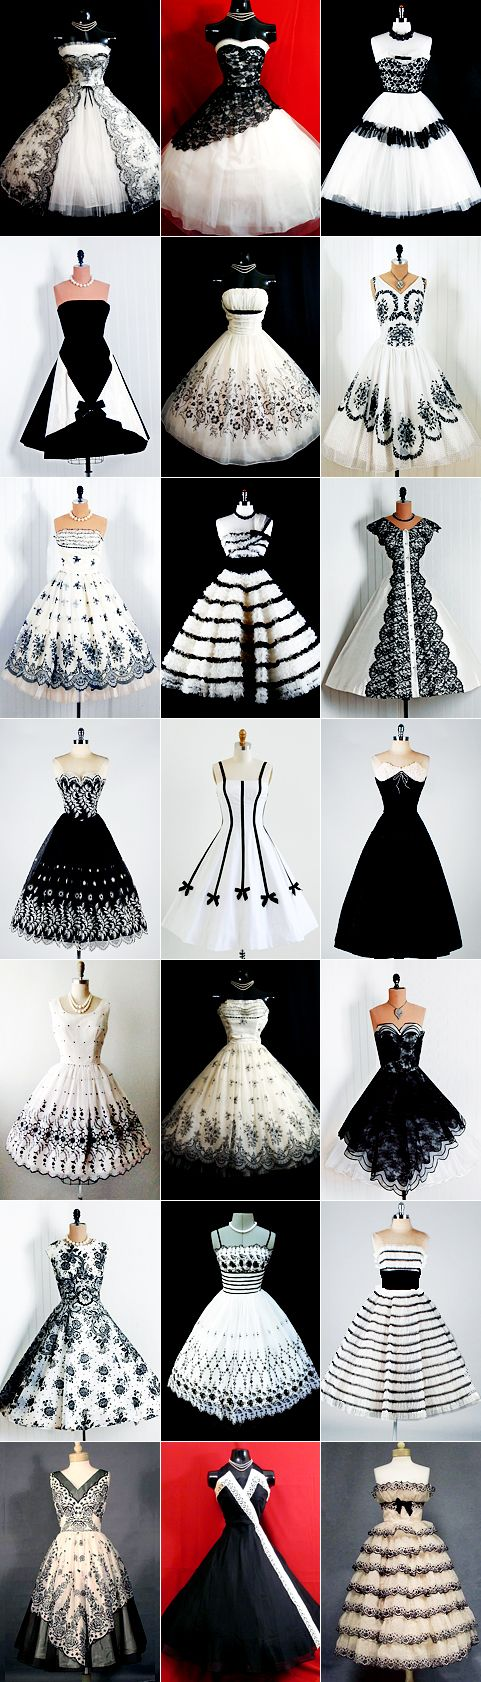 1950s Prom and Party Dresses discover and share your fashion ideas on popmiss.com